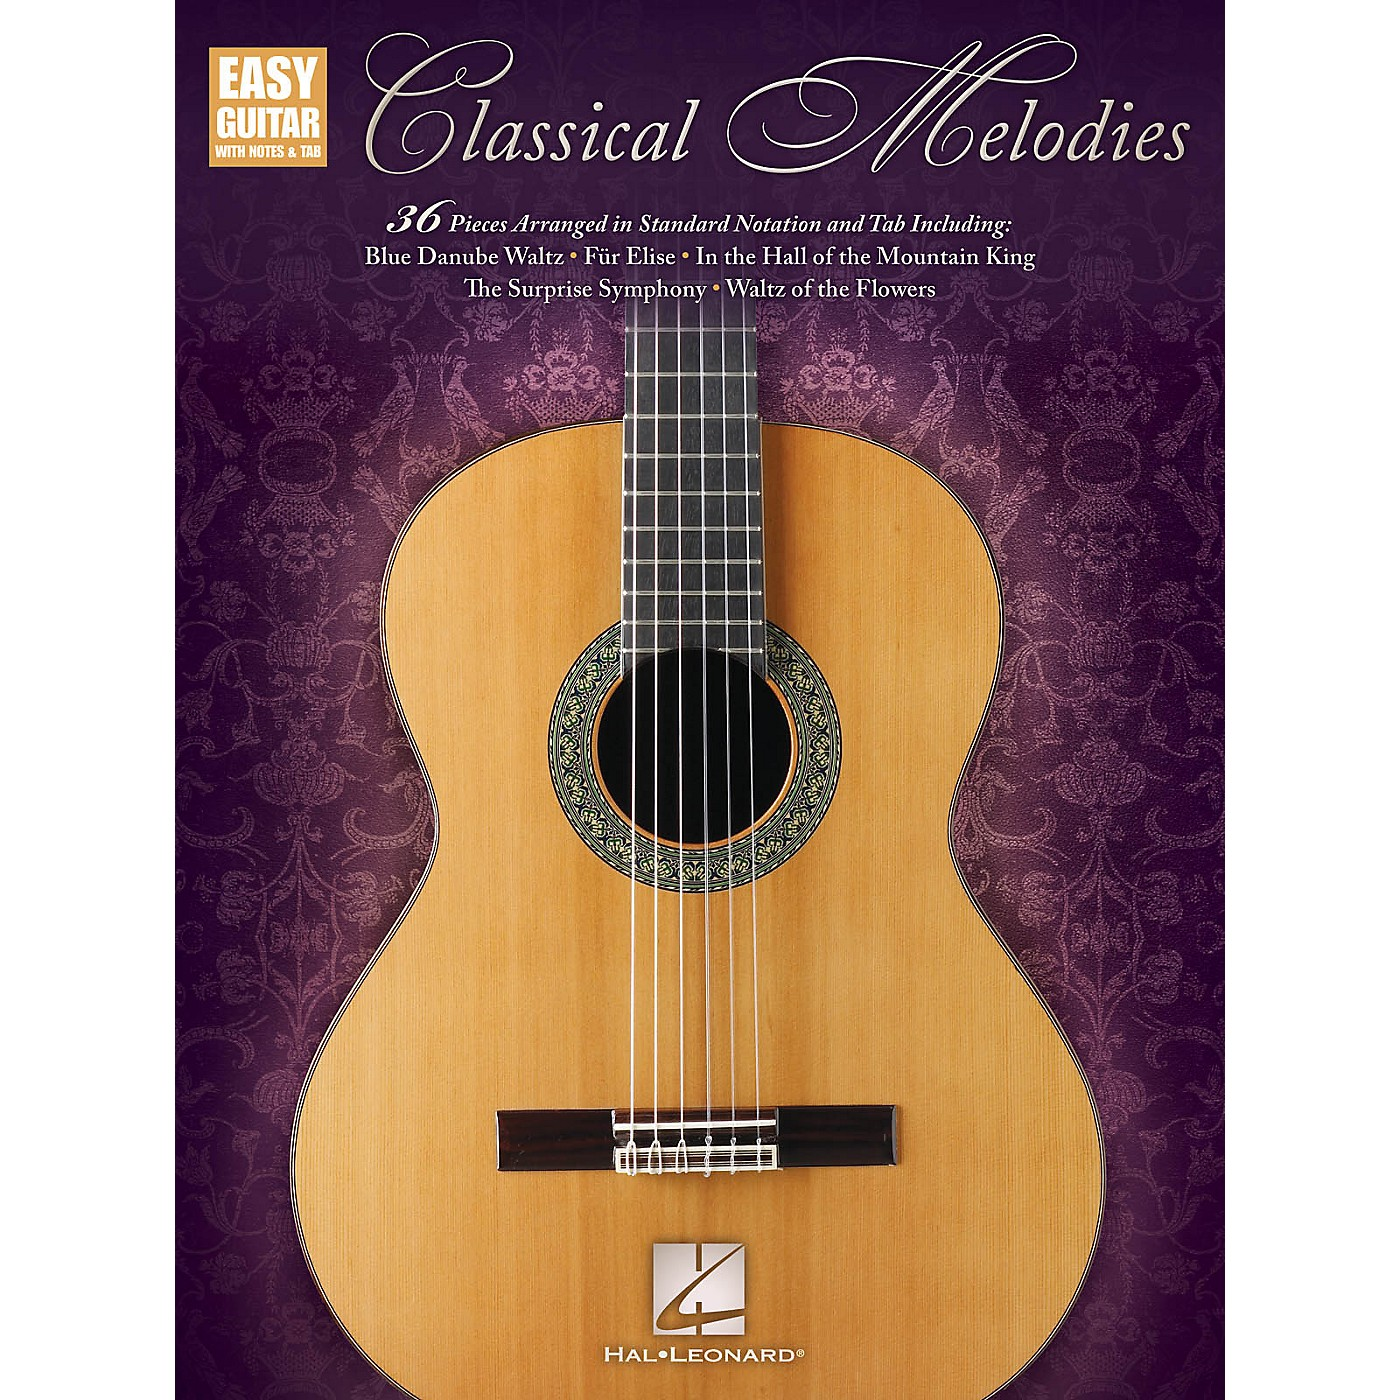 Hal Leonard Classical Melodies (Easy Guitar with Notes & Tab) Easy Guitar Series Softcover thumbnail